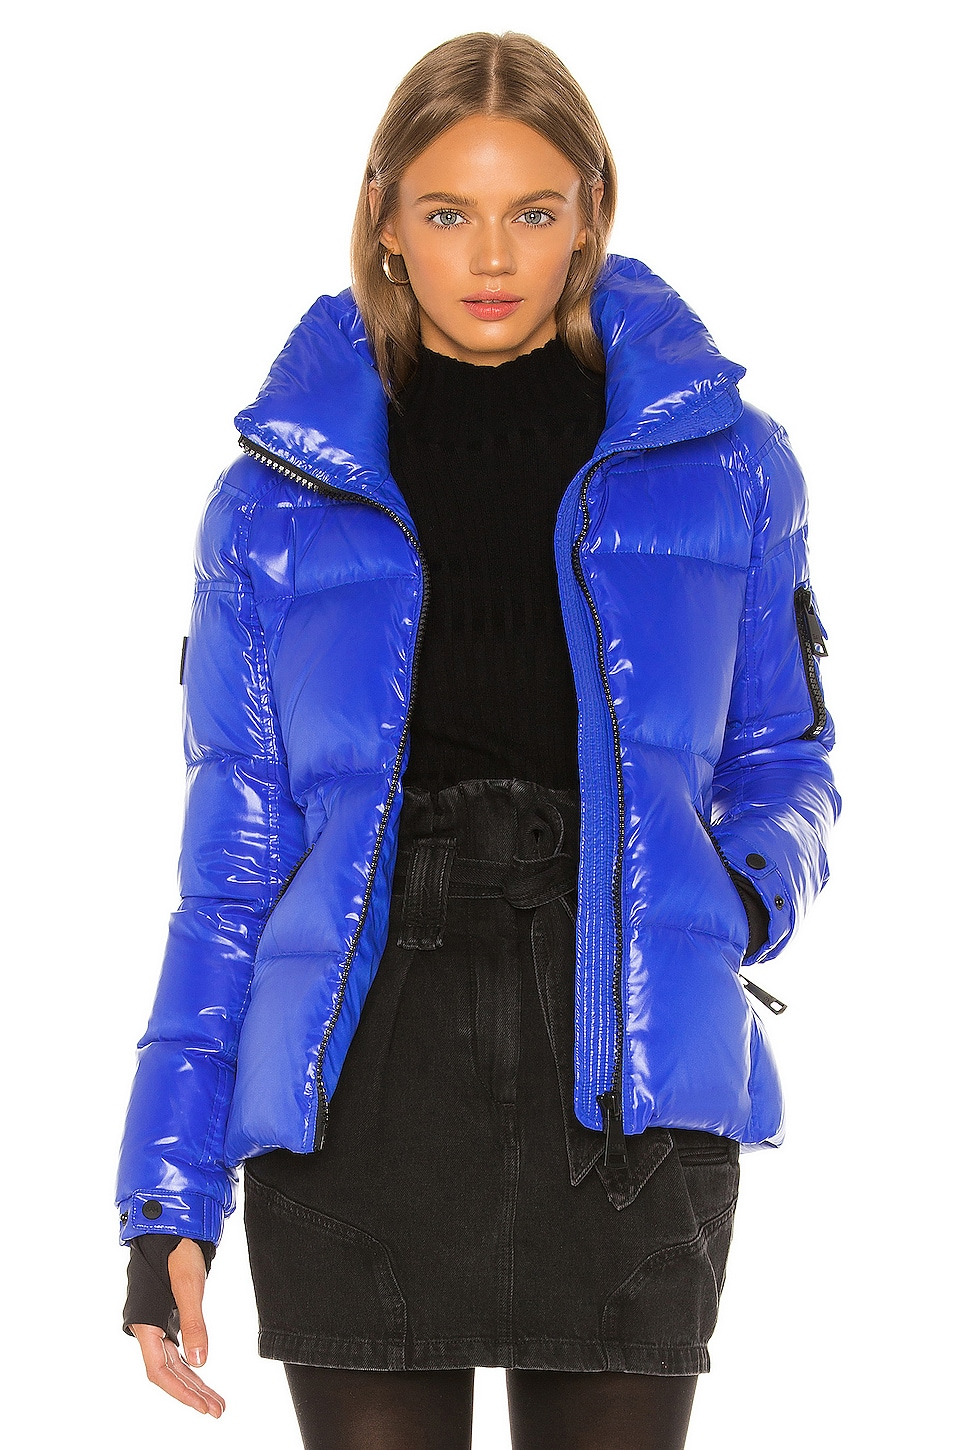 SAM. Freestyle Puffer Jacket in Light Royal